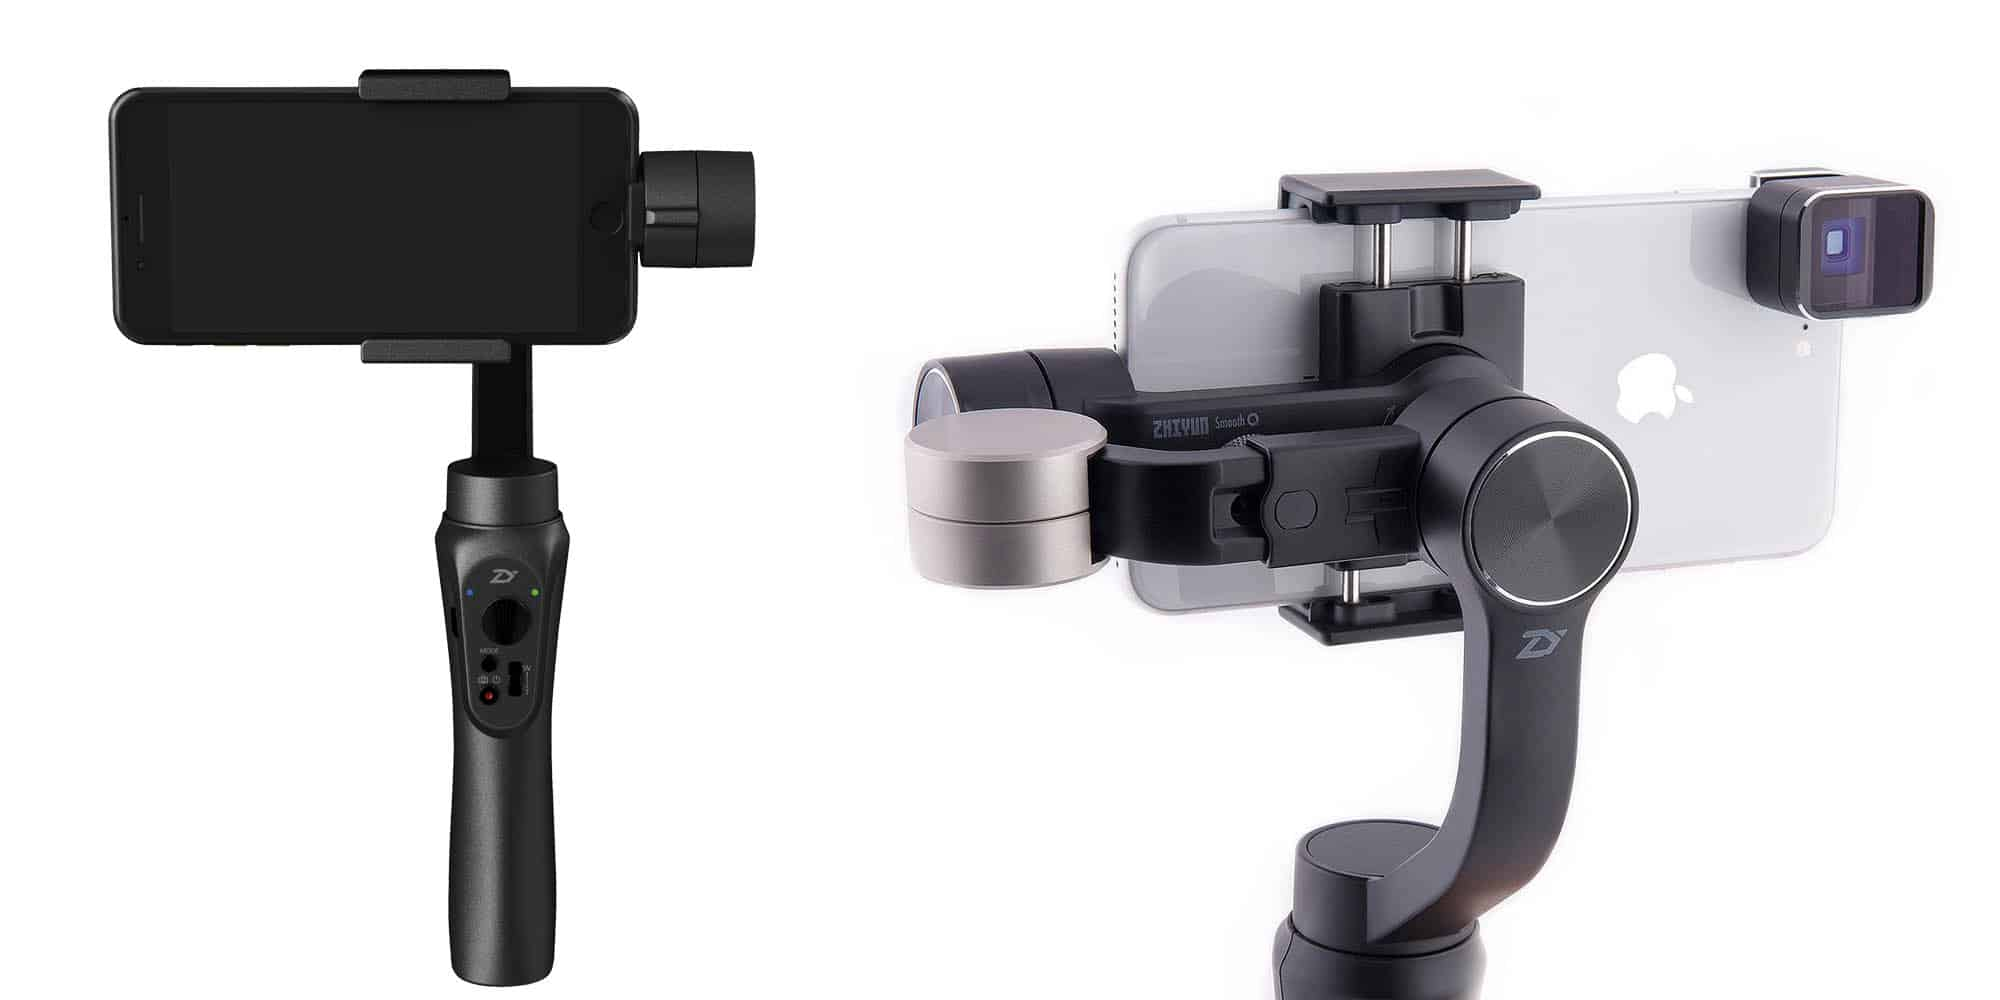 featured image for zhiyun smooth q review